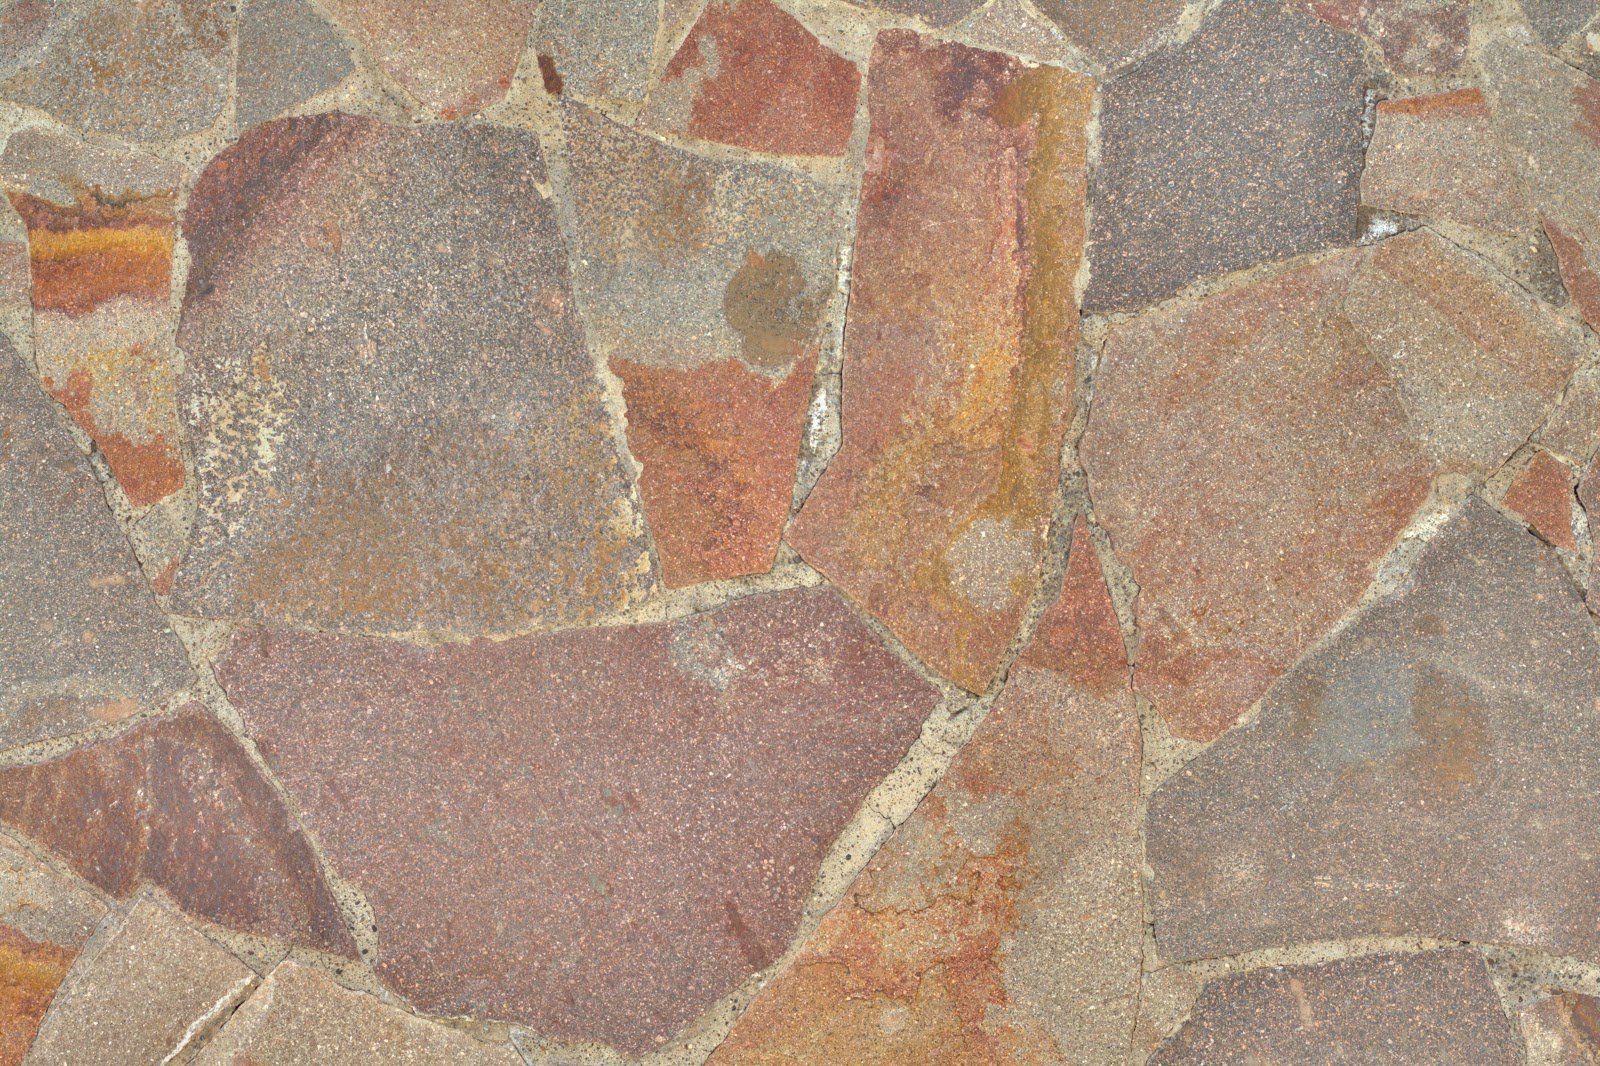 stone tile texture. Brilliant Tile Stone Large Coloured Floor Tiles Texture 4770x3178 For Tile Texture